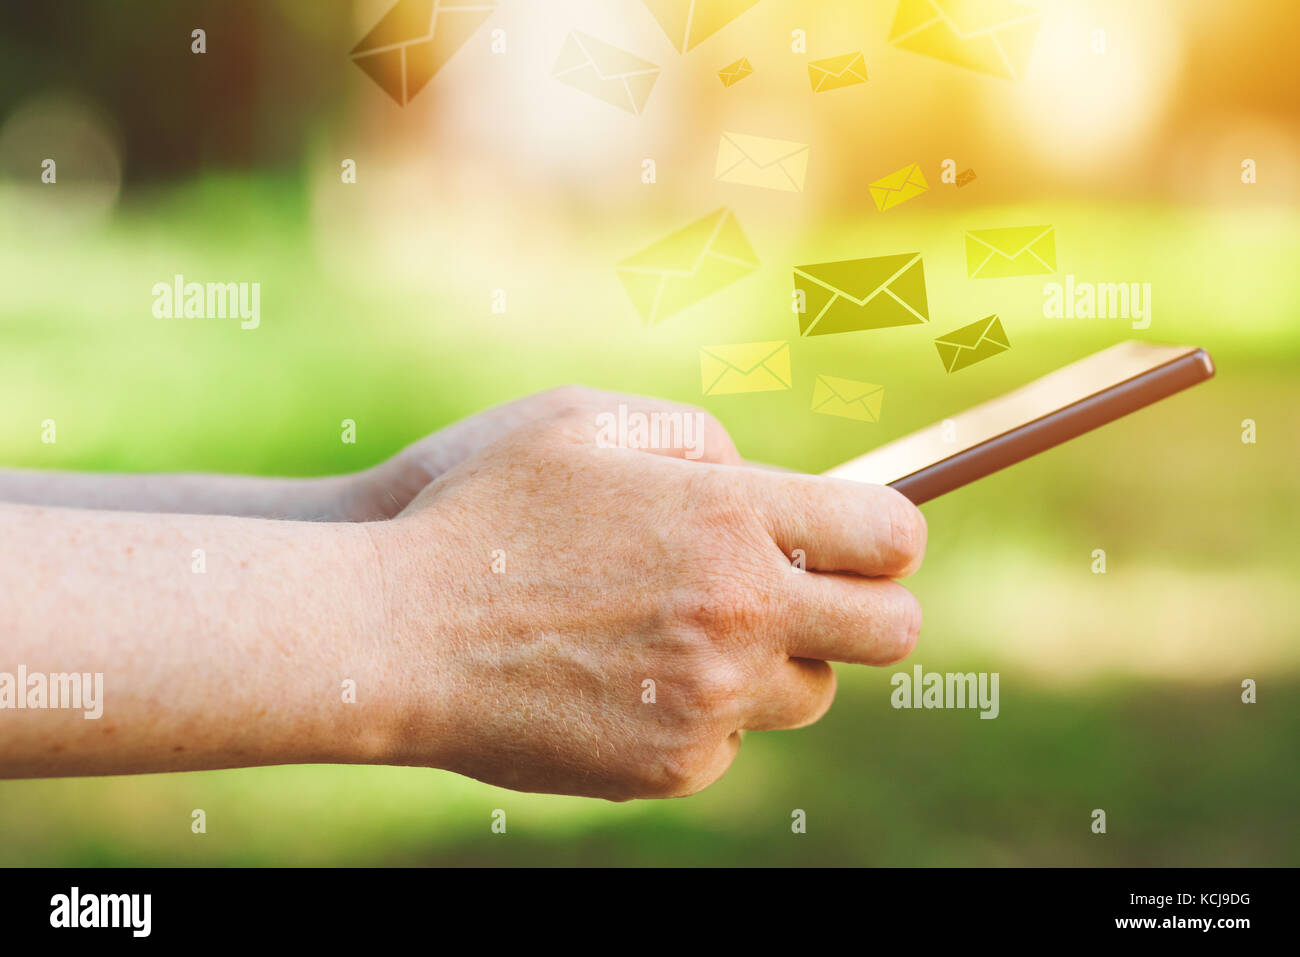 Mobile phone communication concept with female hands using smartphone app and envelopes as outgoing e-mail or text - Stock Image